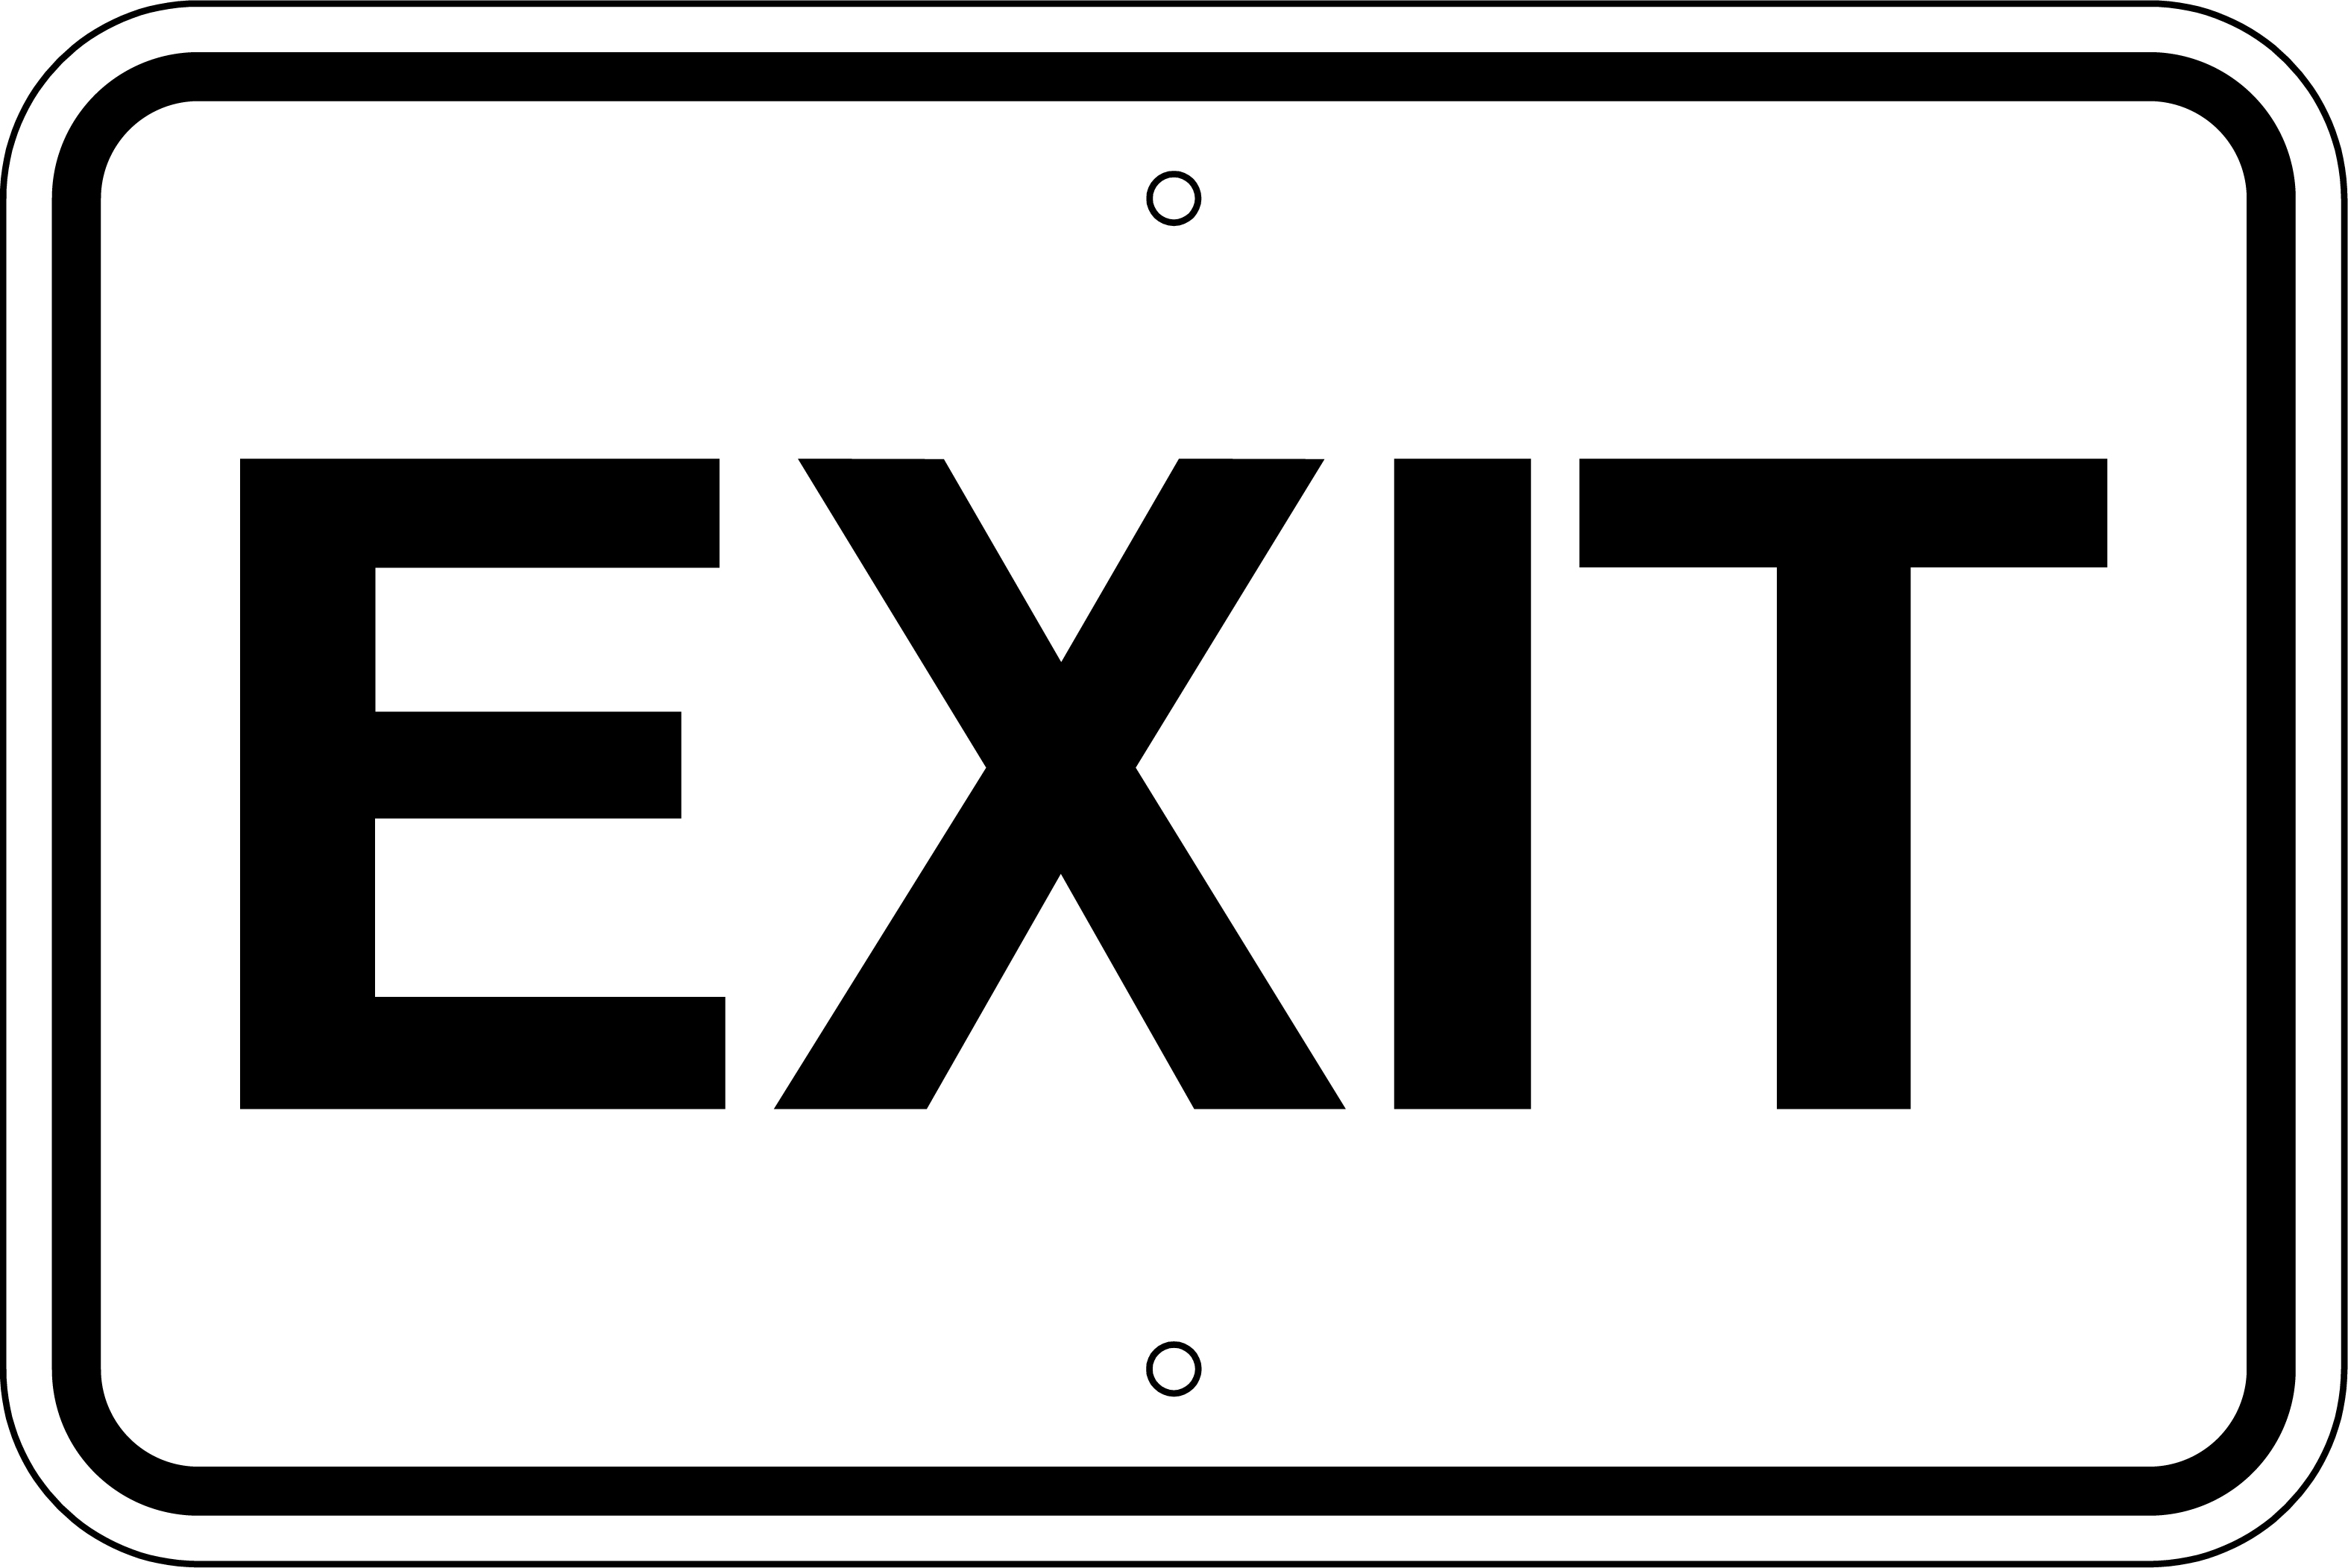 Free Pictures Of Exit Signs, Download Free Clip Art, Free Clip Art - Free Printable Exit Signs With Arrow